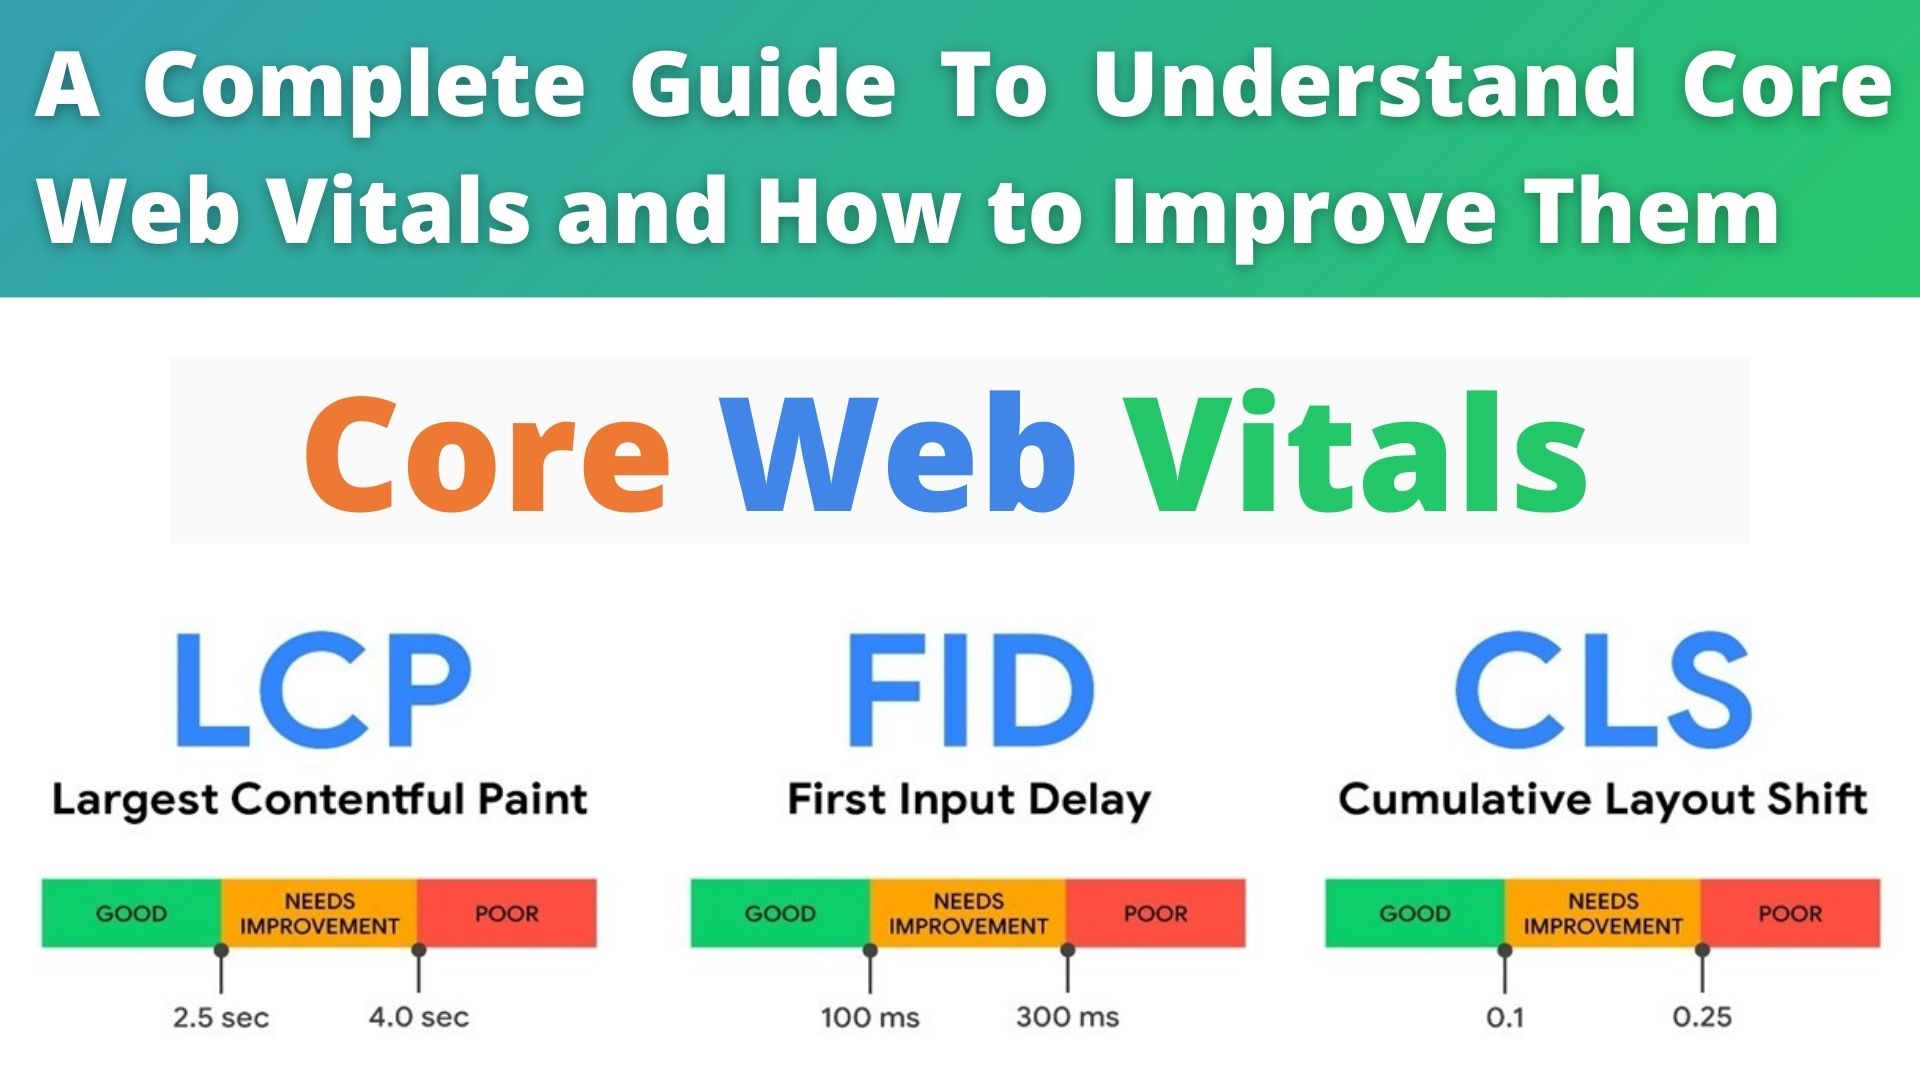 A Complete Guide To Understand Core Web Vitals and How to Improve Them